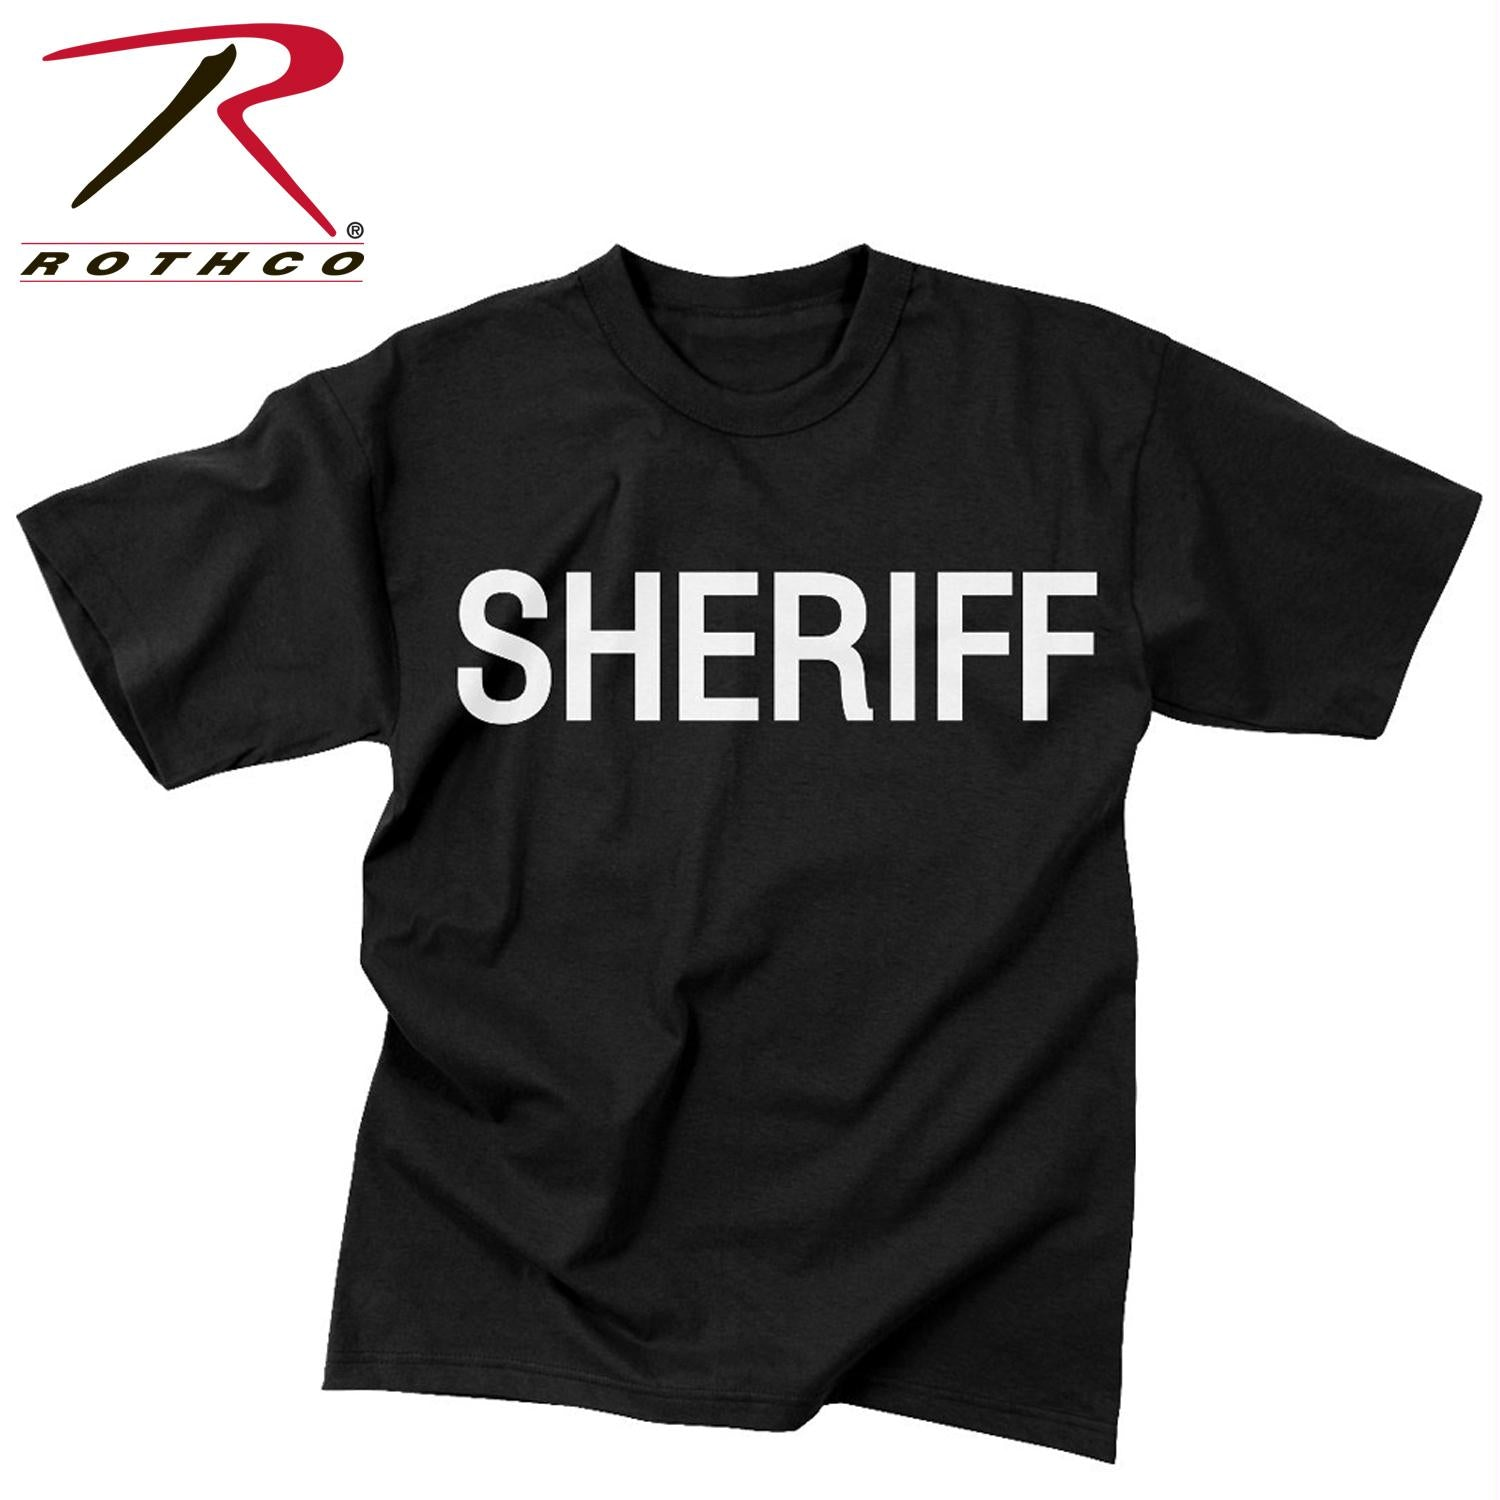 Rothco 2-Sided Sheriff T-Shirt - S